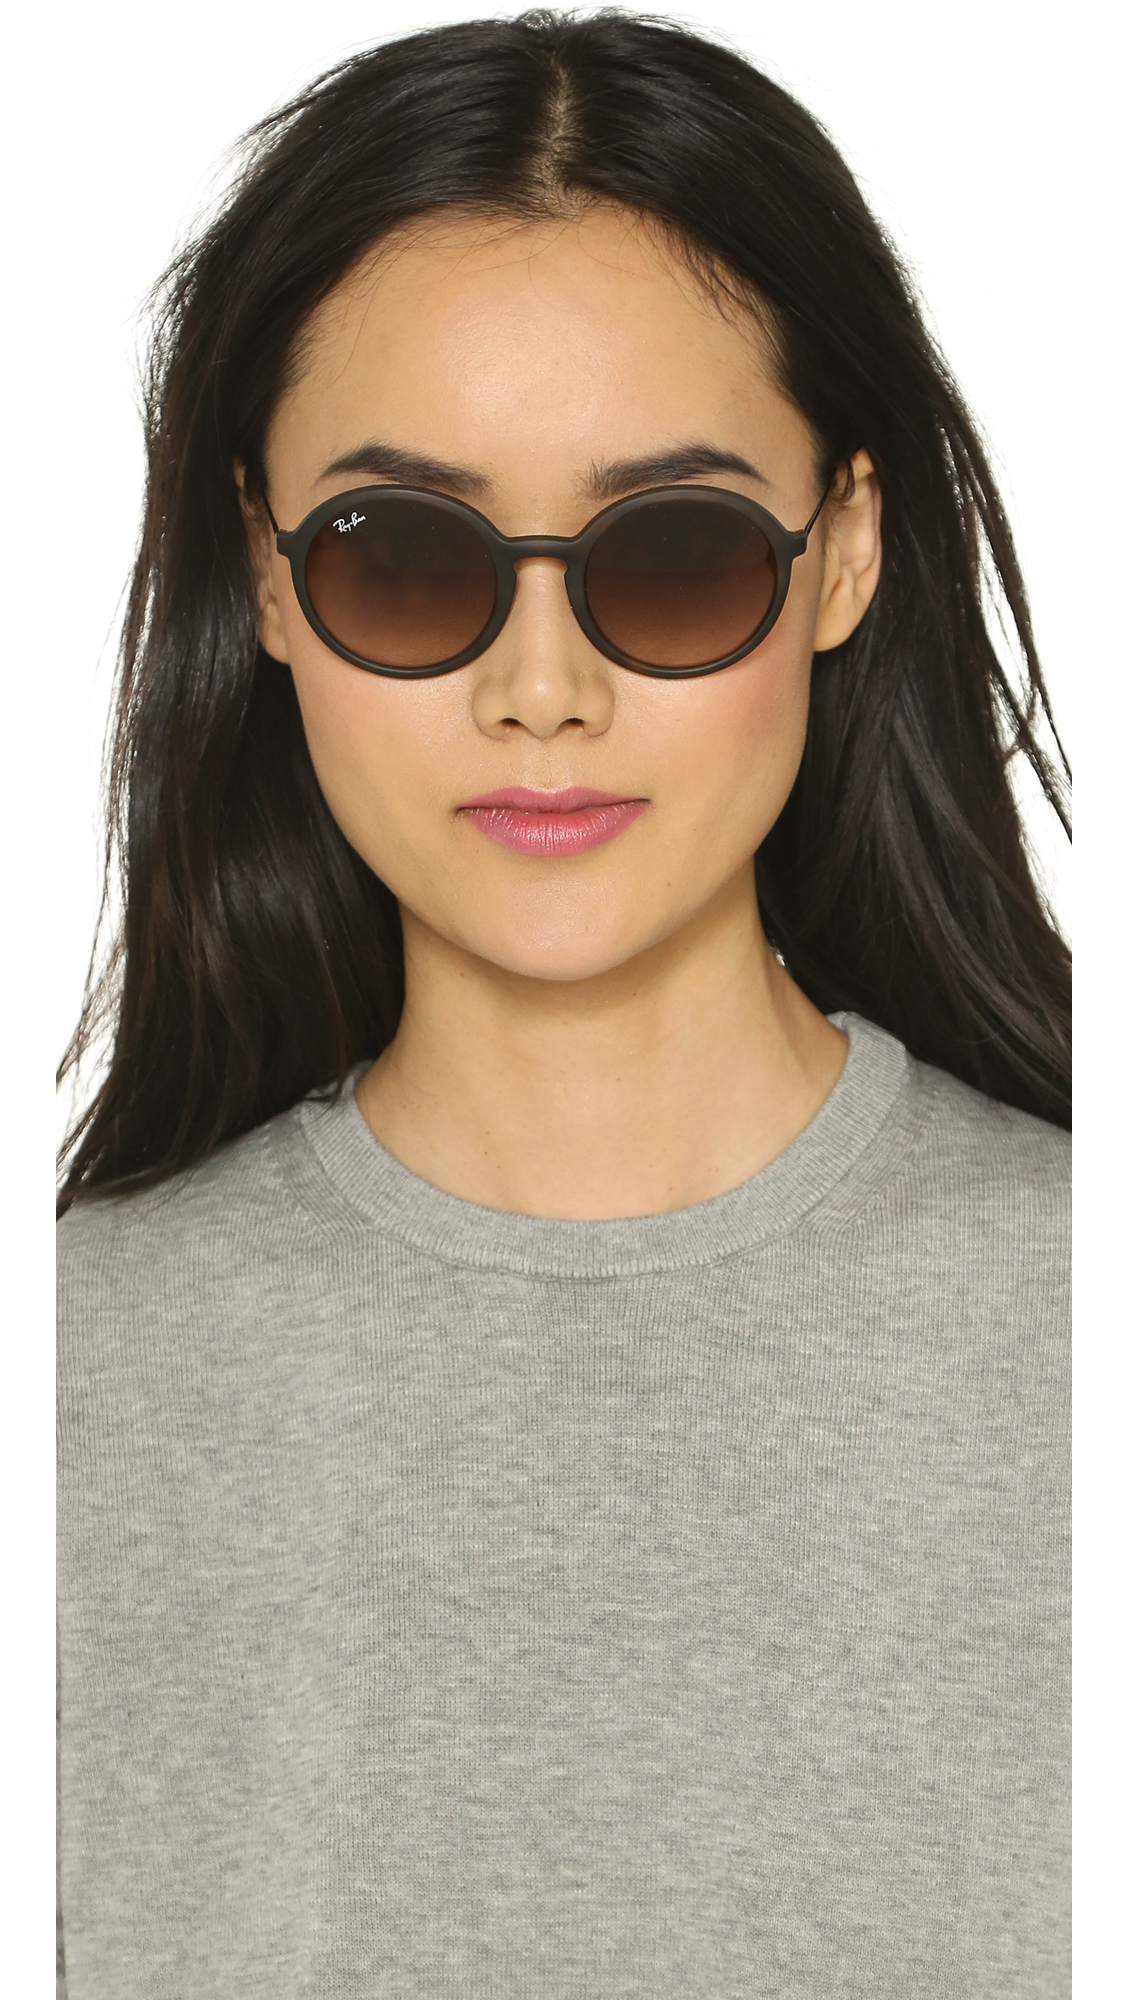 Ray-ban Women s Highstreet Round Sunglasses   David Simchi-Levi c35375d29ddf